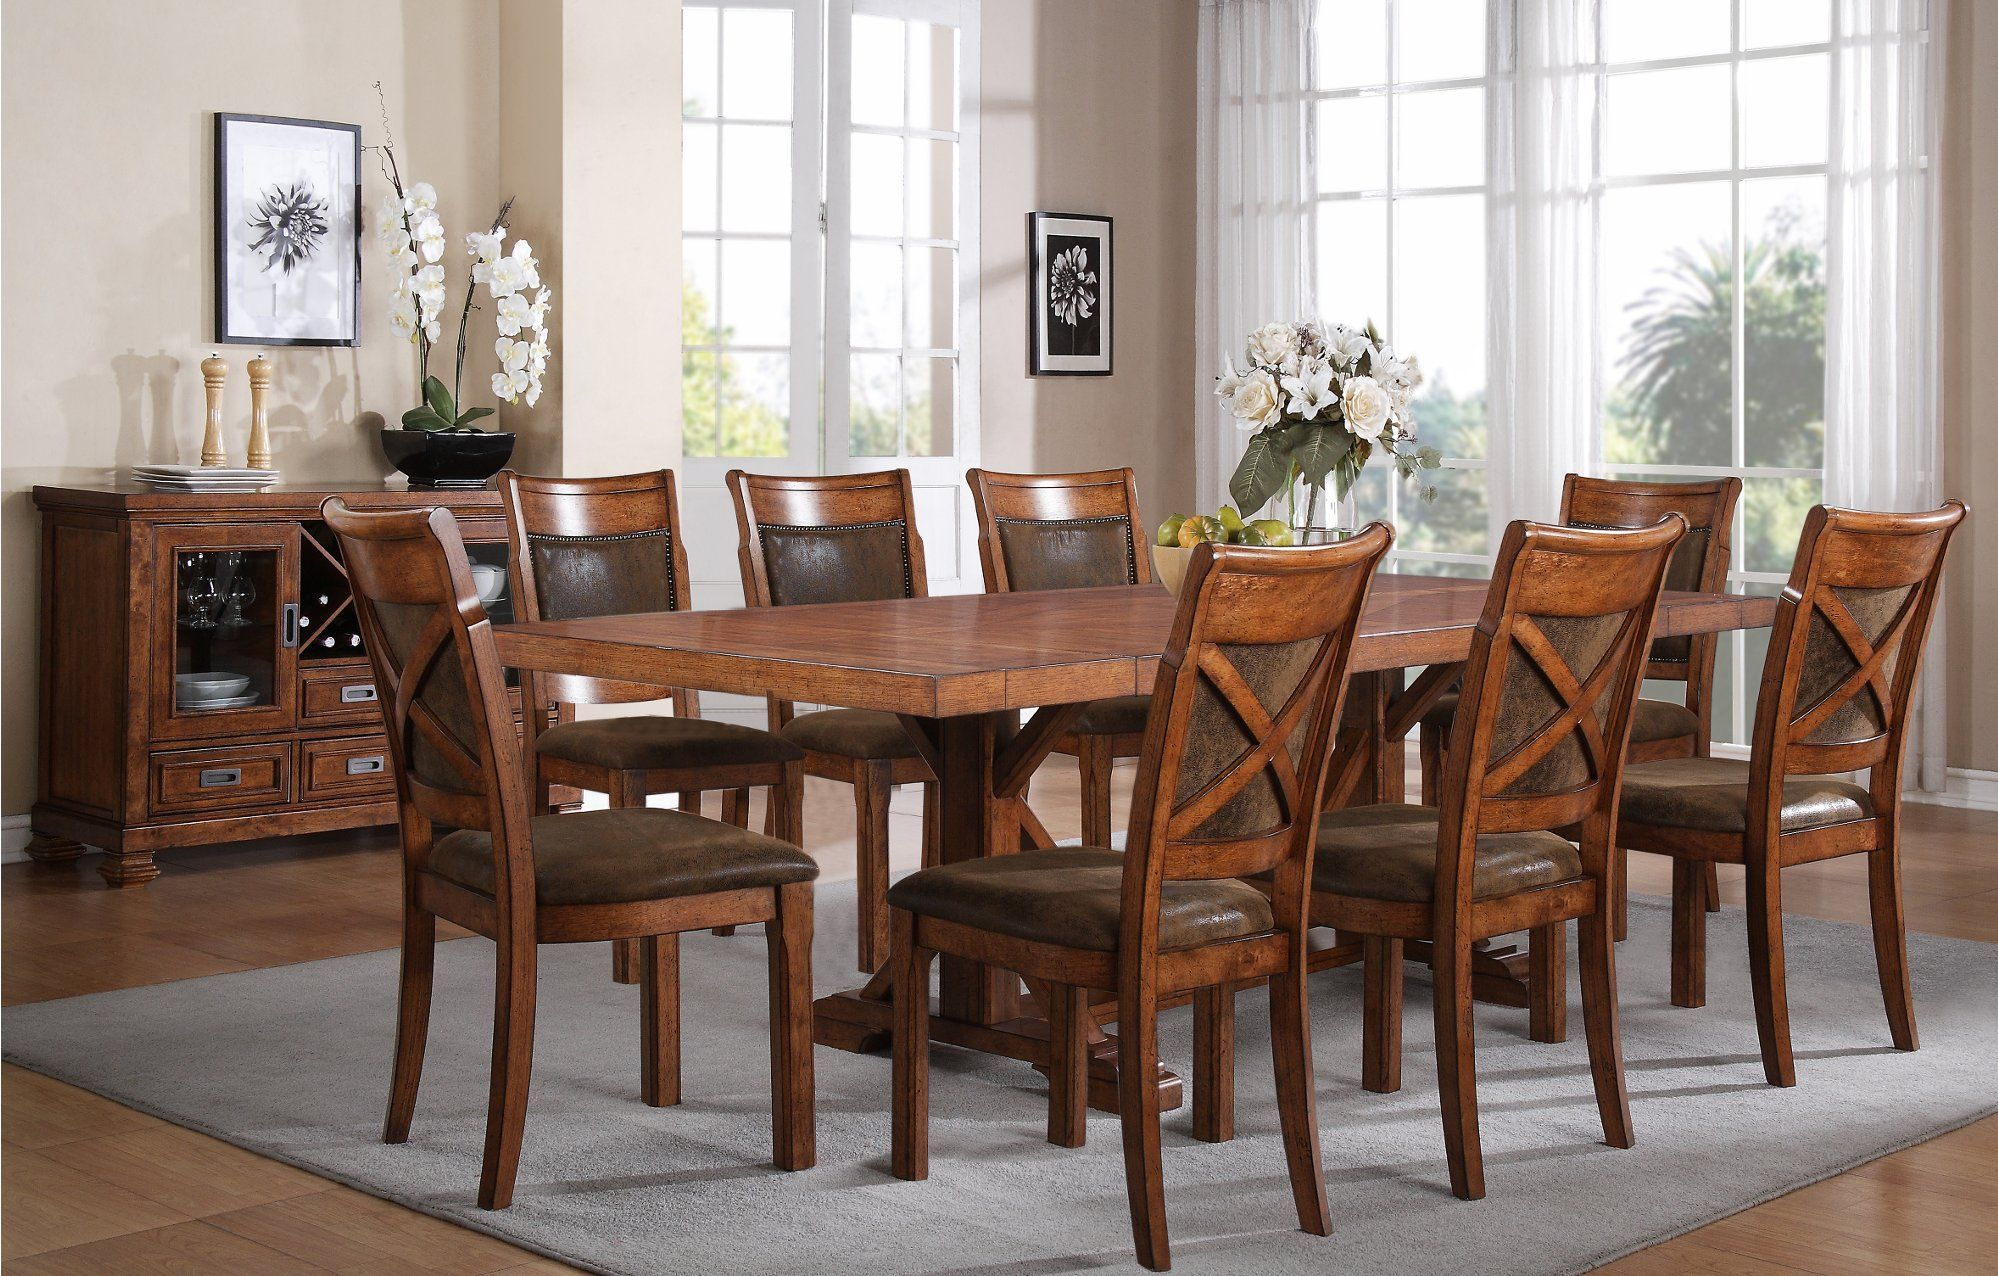 Brown 5 Piece Dining Set Caramel In 2020 With Images Brown